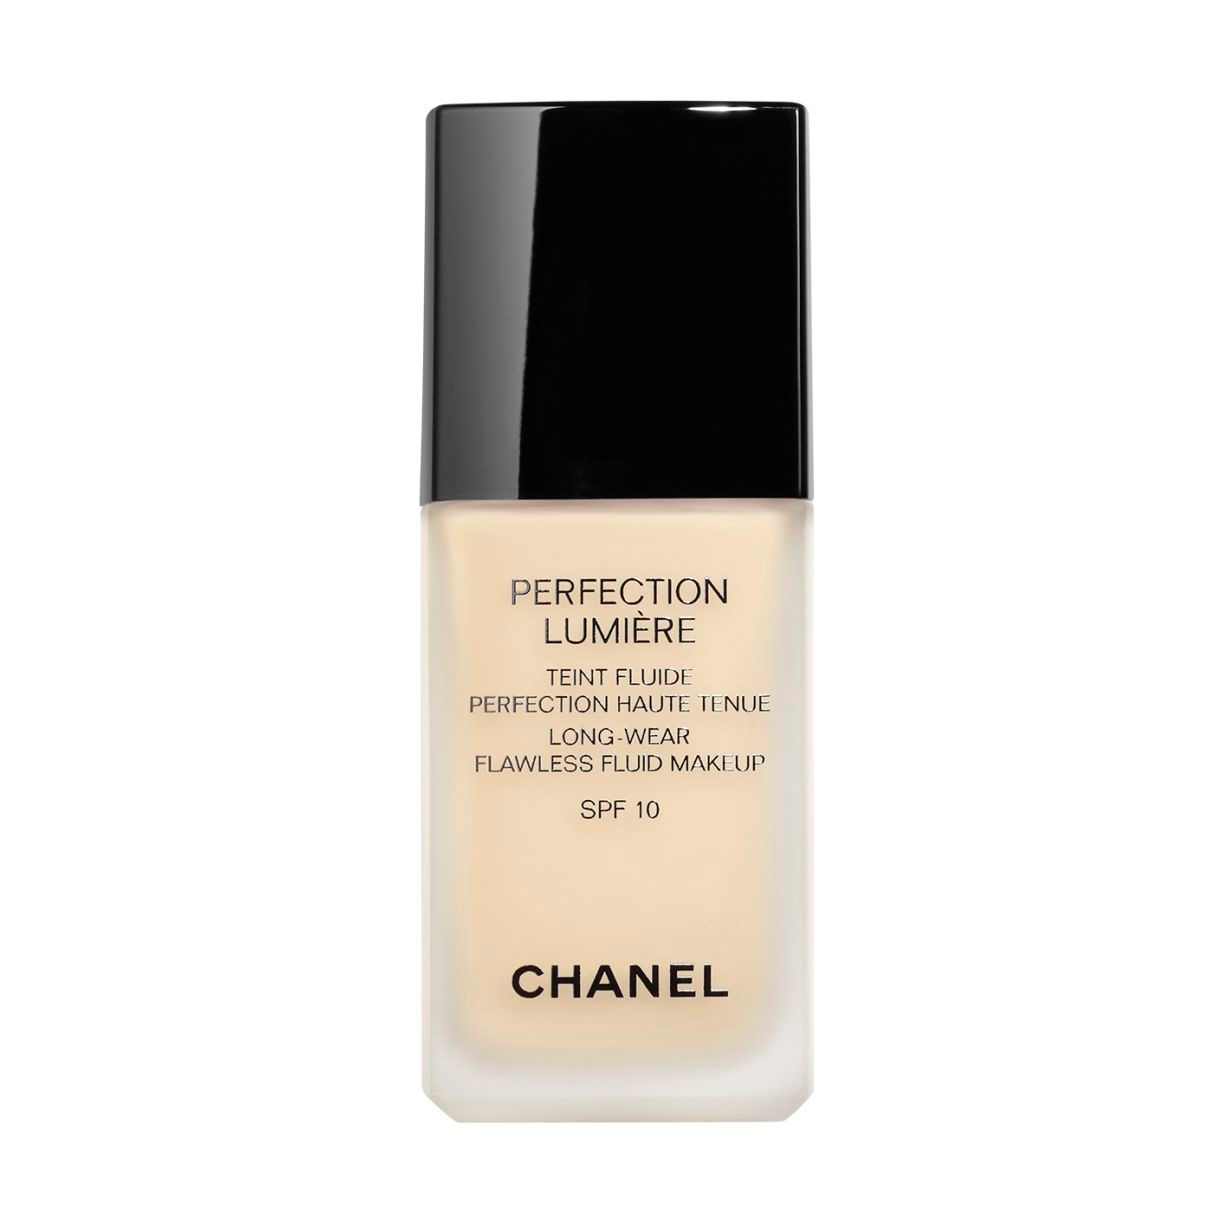 PERFECTION LUMIÈRE LONG-WEAR FLAWLESS FLUID MAKEUP SPF 10